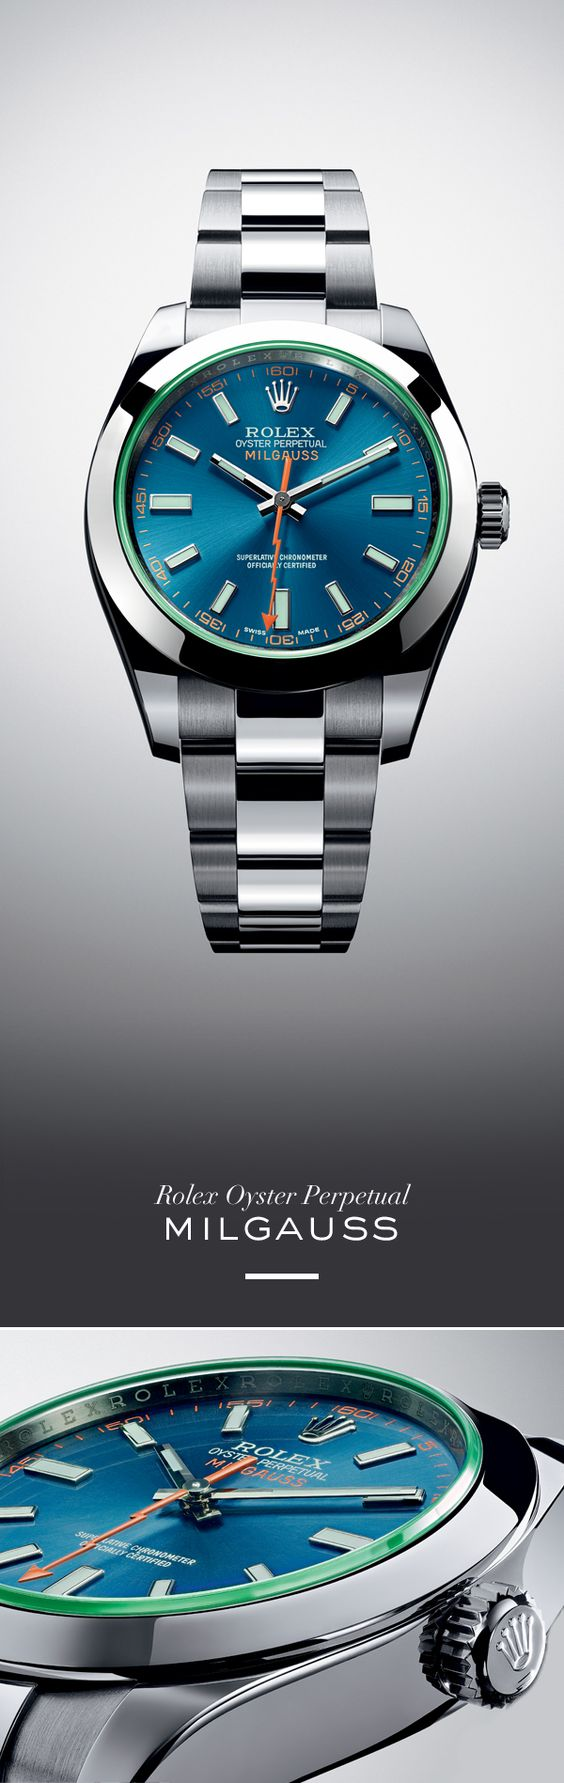 The Rolex Milgauss 40 mm in 904L steel with a smooth bezel, Z blue dial, green sapphire crystal and Oyster bracelet.